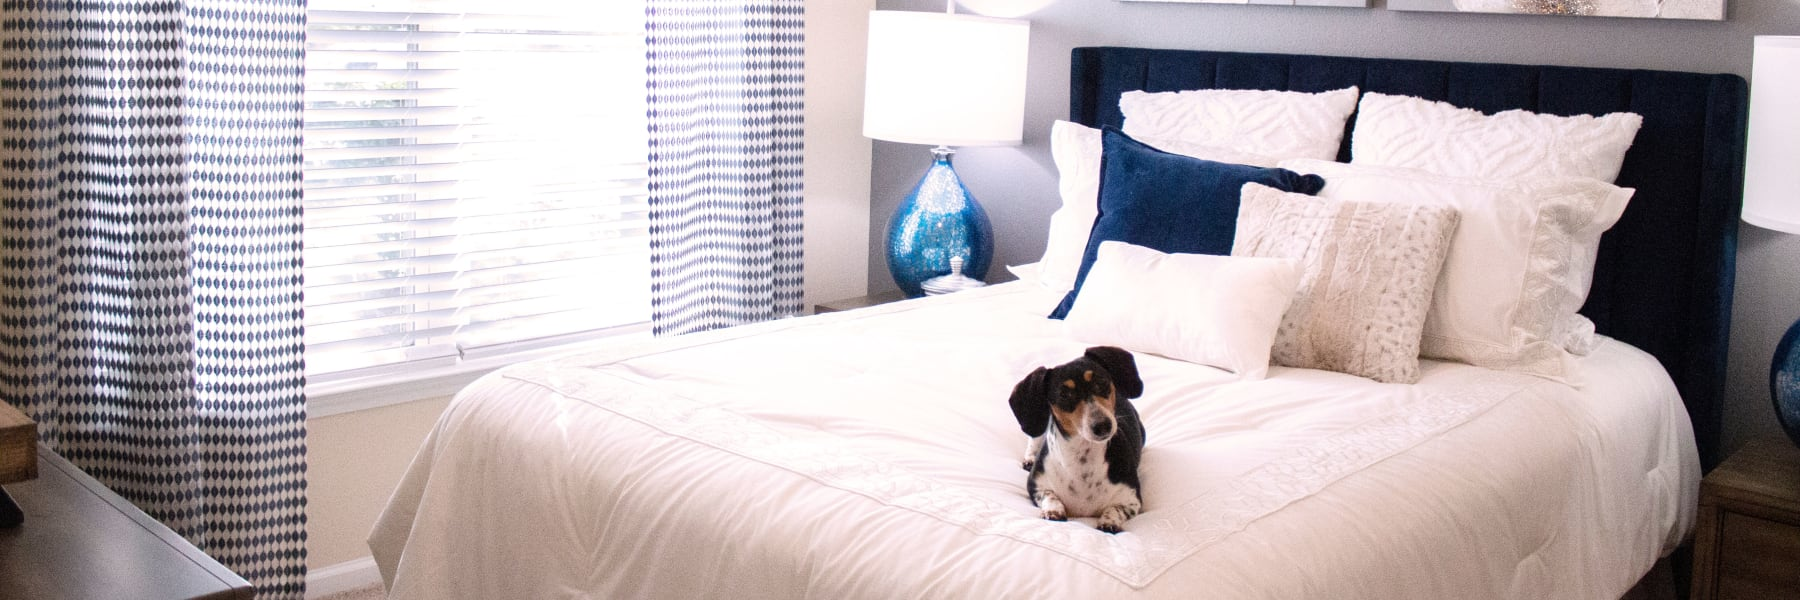 Pet friendly apartments in Fort Mill, South Carolina at Berkshire Fort Mill